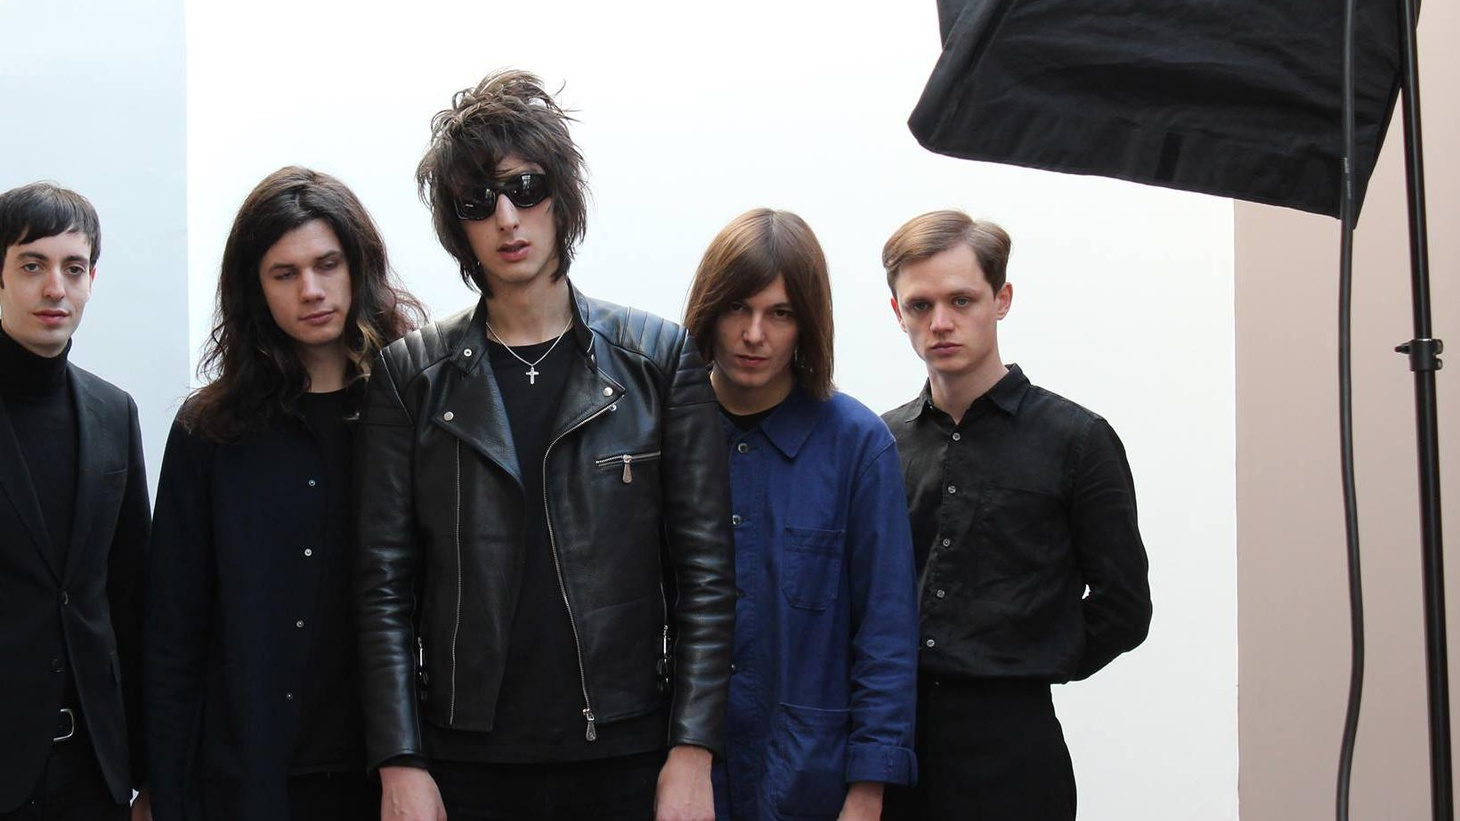 The Horrors infectious rock veers towards the dark side with flashes of pyschedelia.